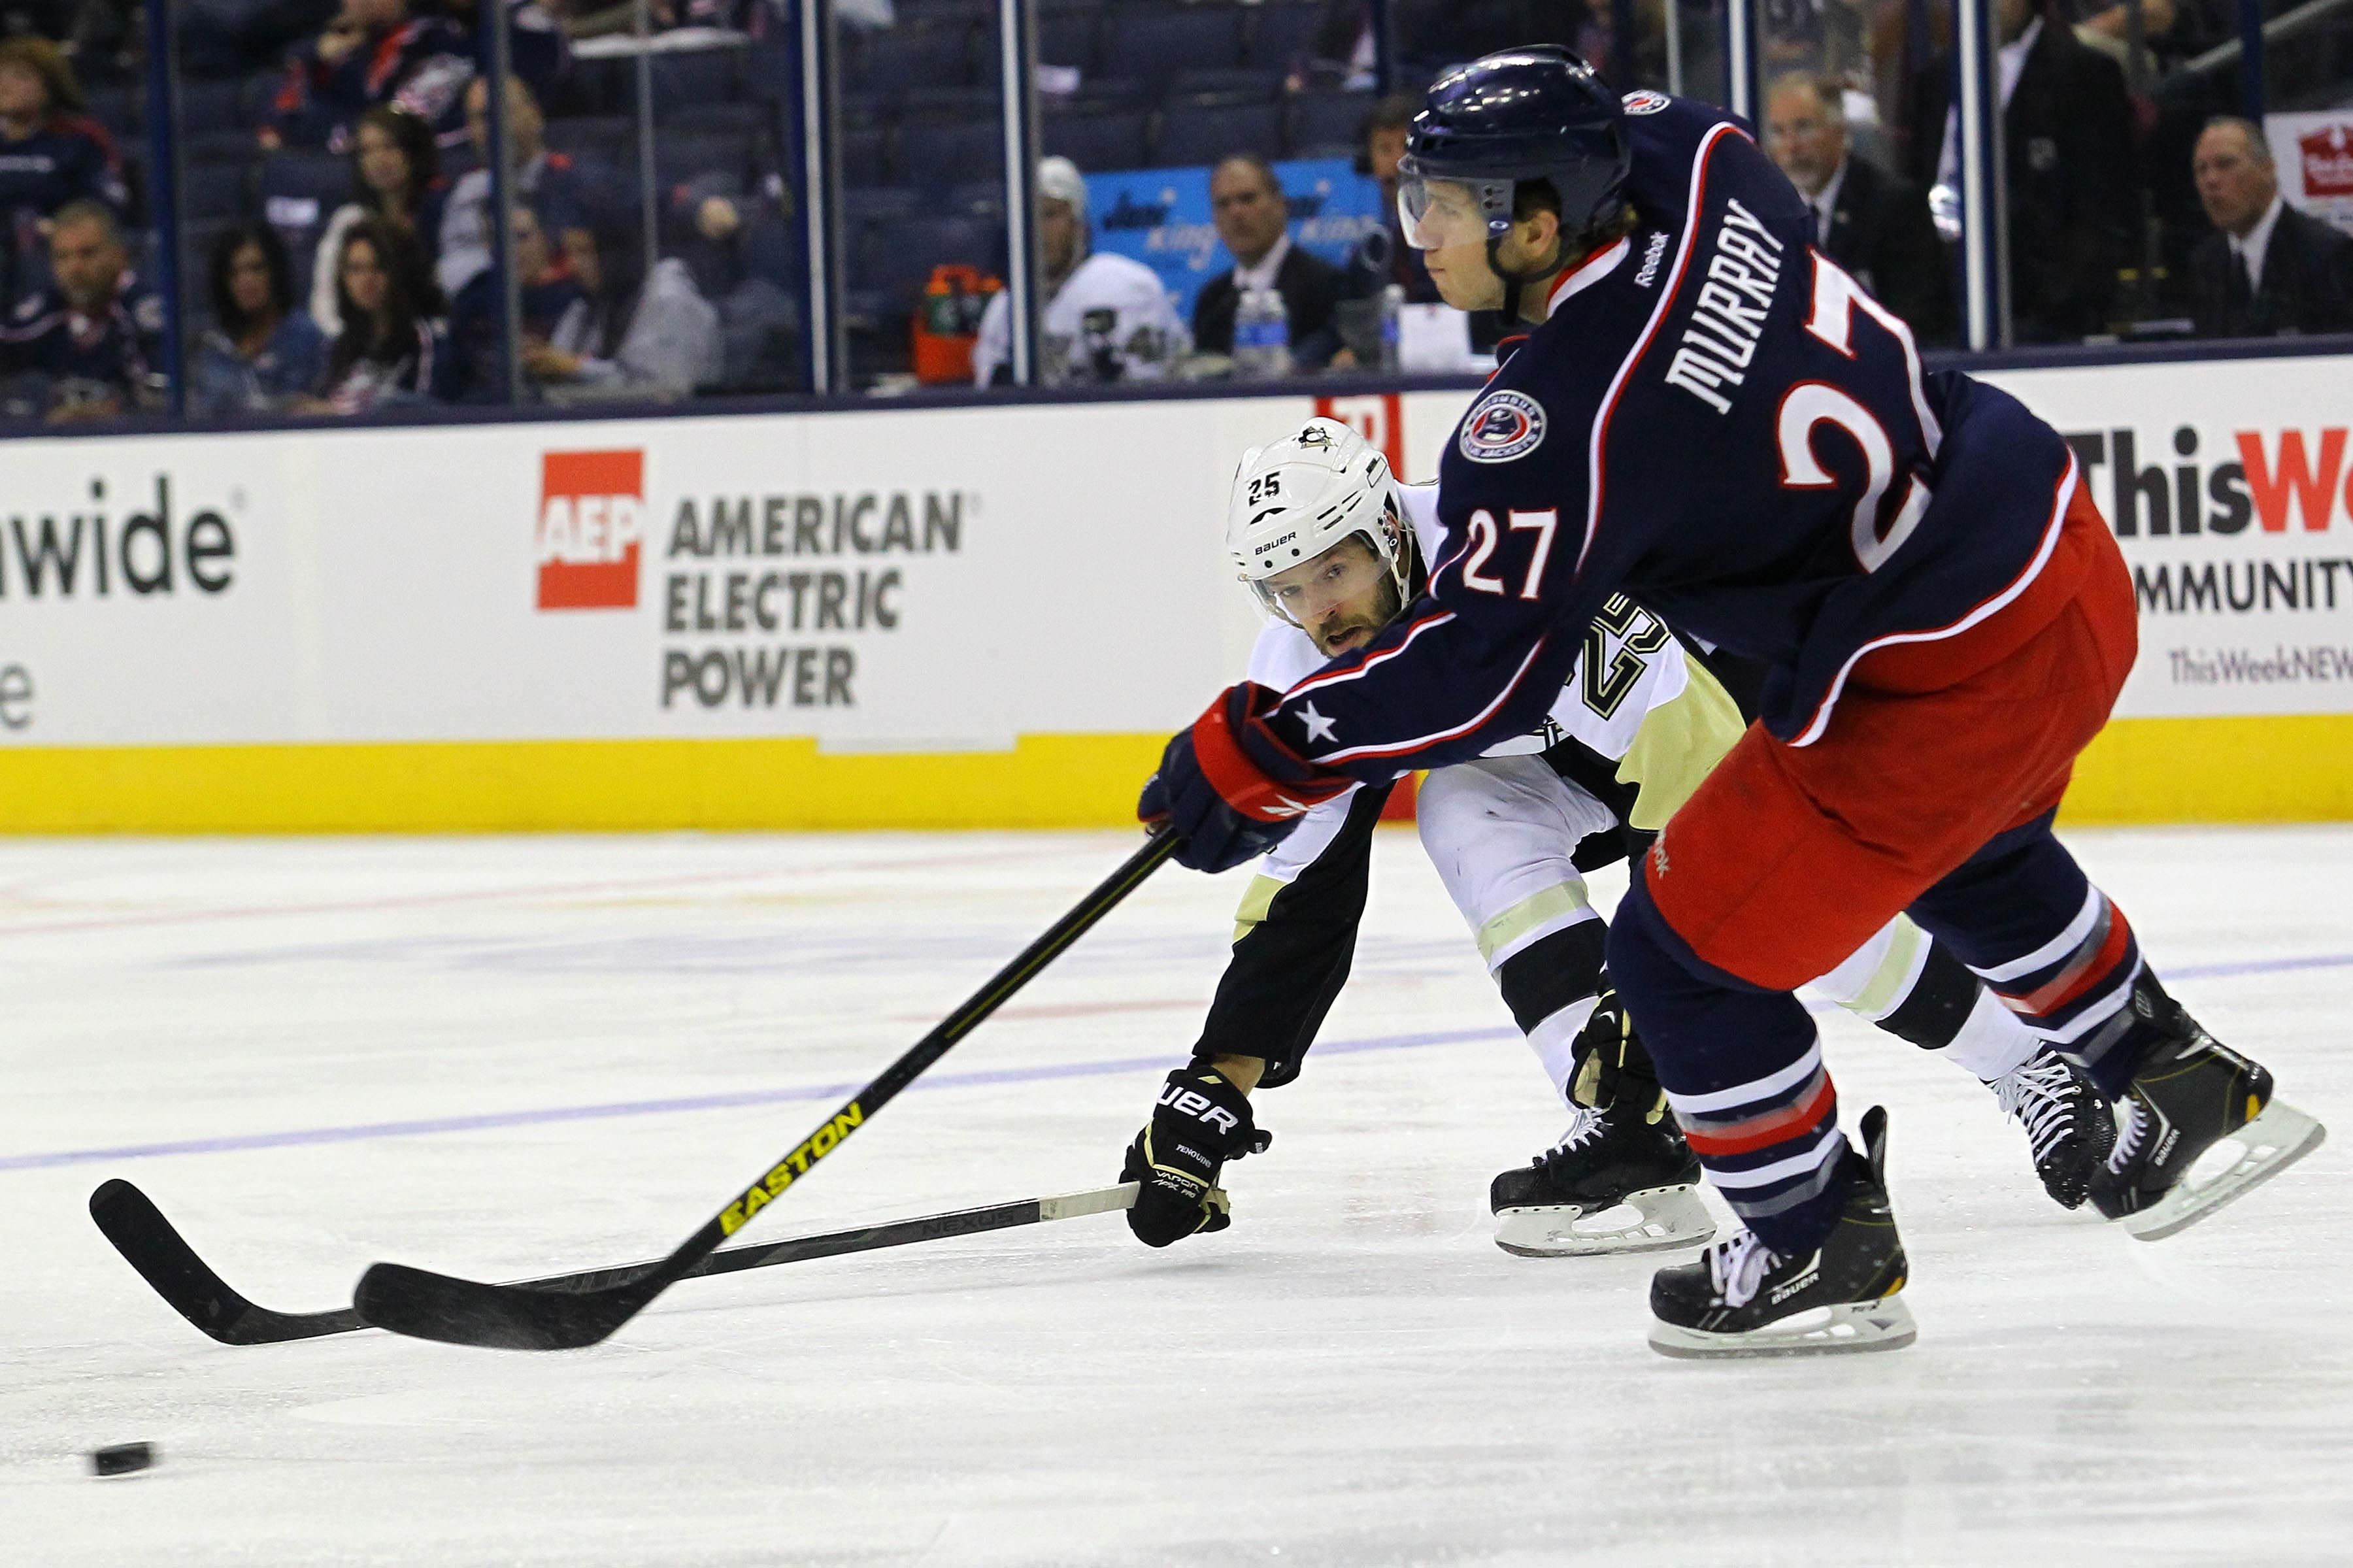 CrowdCam Hot Shot: Columbus Blue Jackets defenseman Ryan Murray passes the puck in front of Pittsburgh Penguins forward Andrew Ebbett during the 1st period at Nationwide Arena. Photo by Rob Leifheit